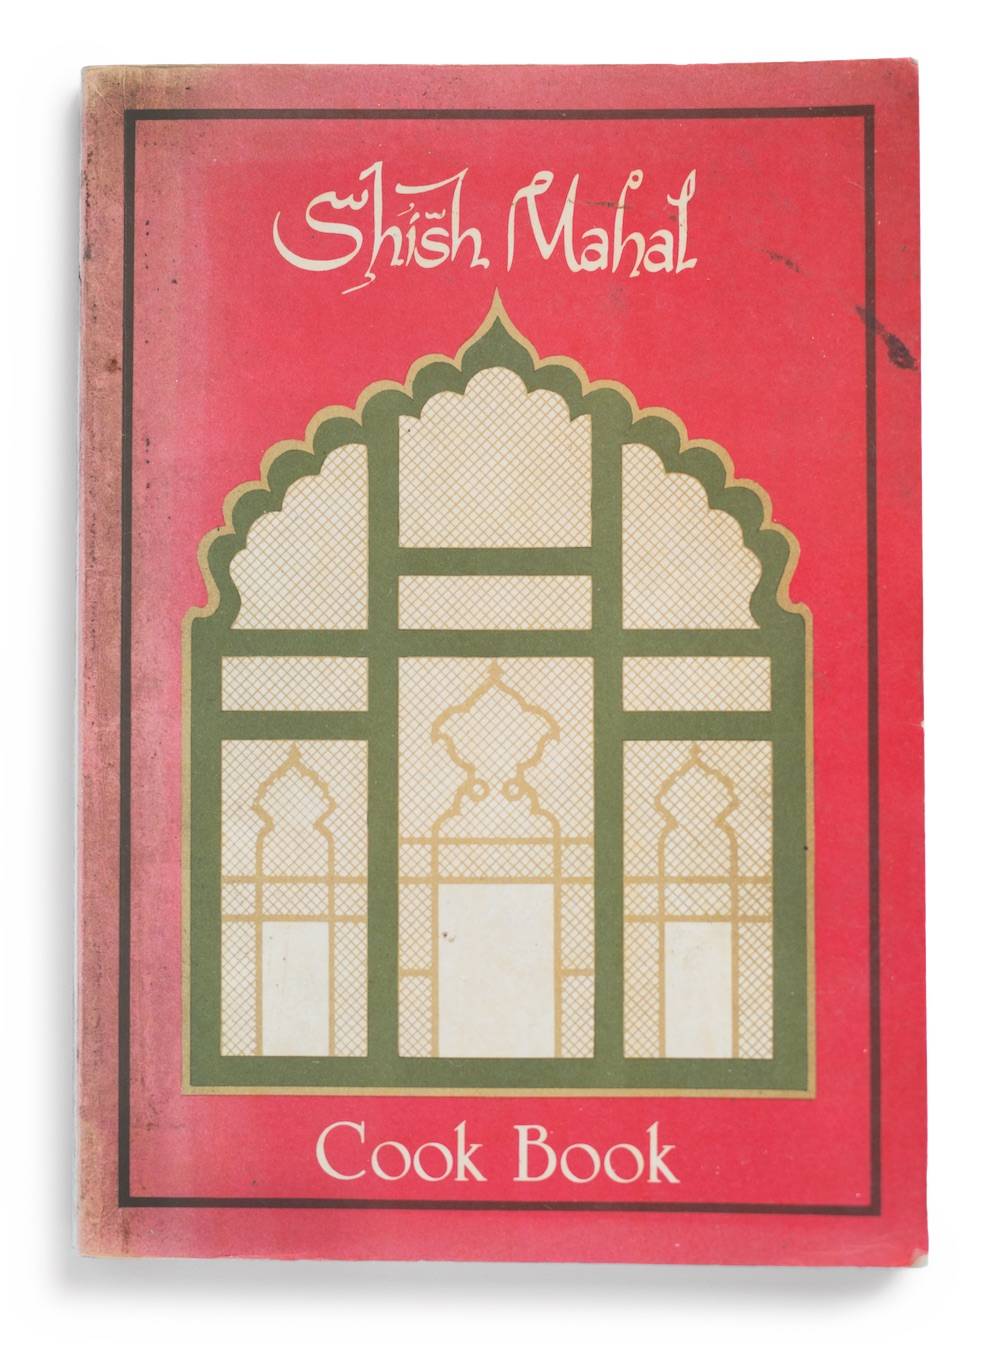 Shish Mahal Cookbook